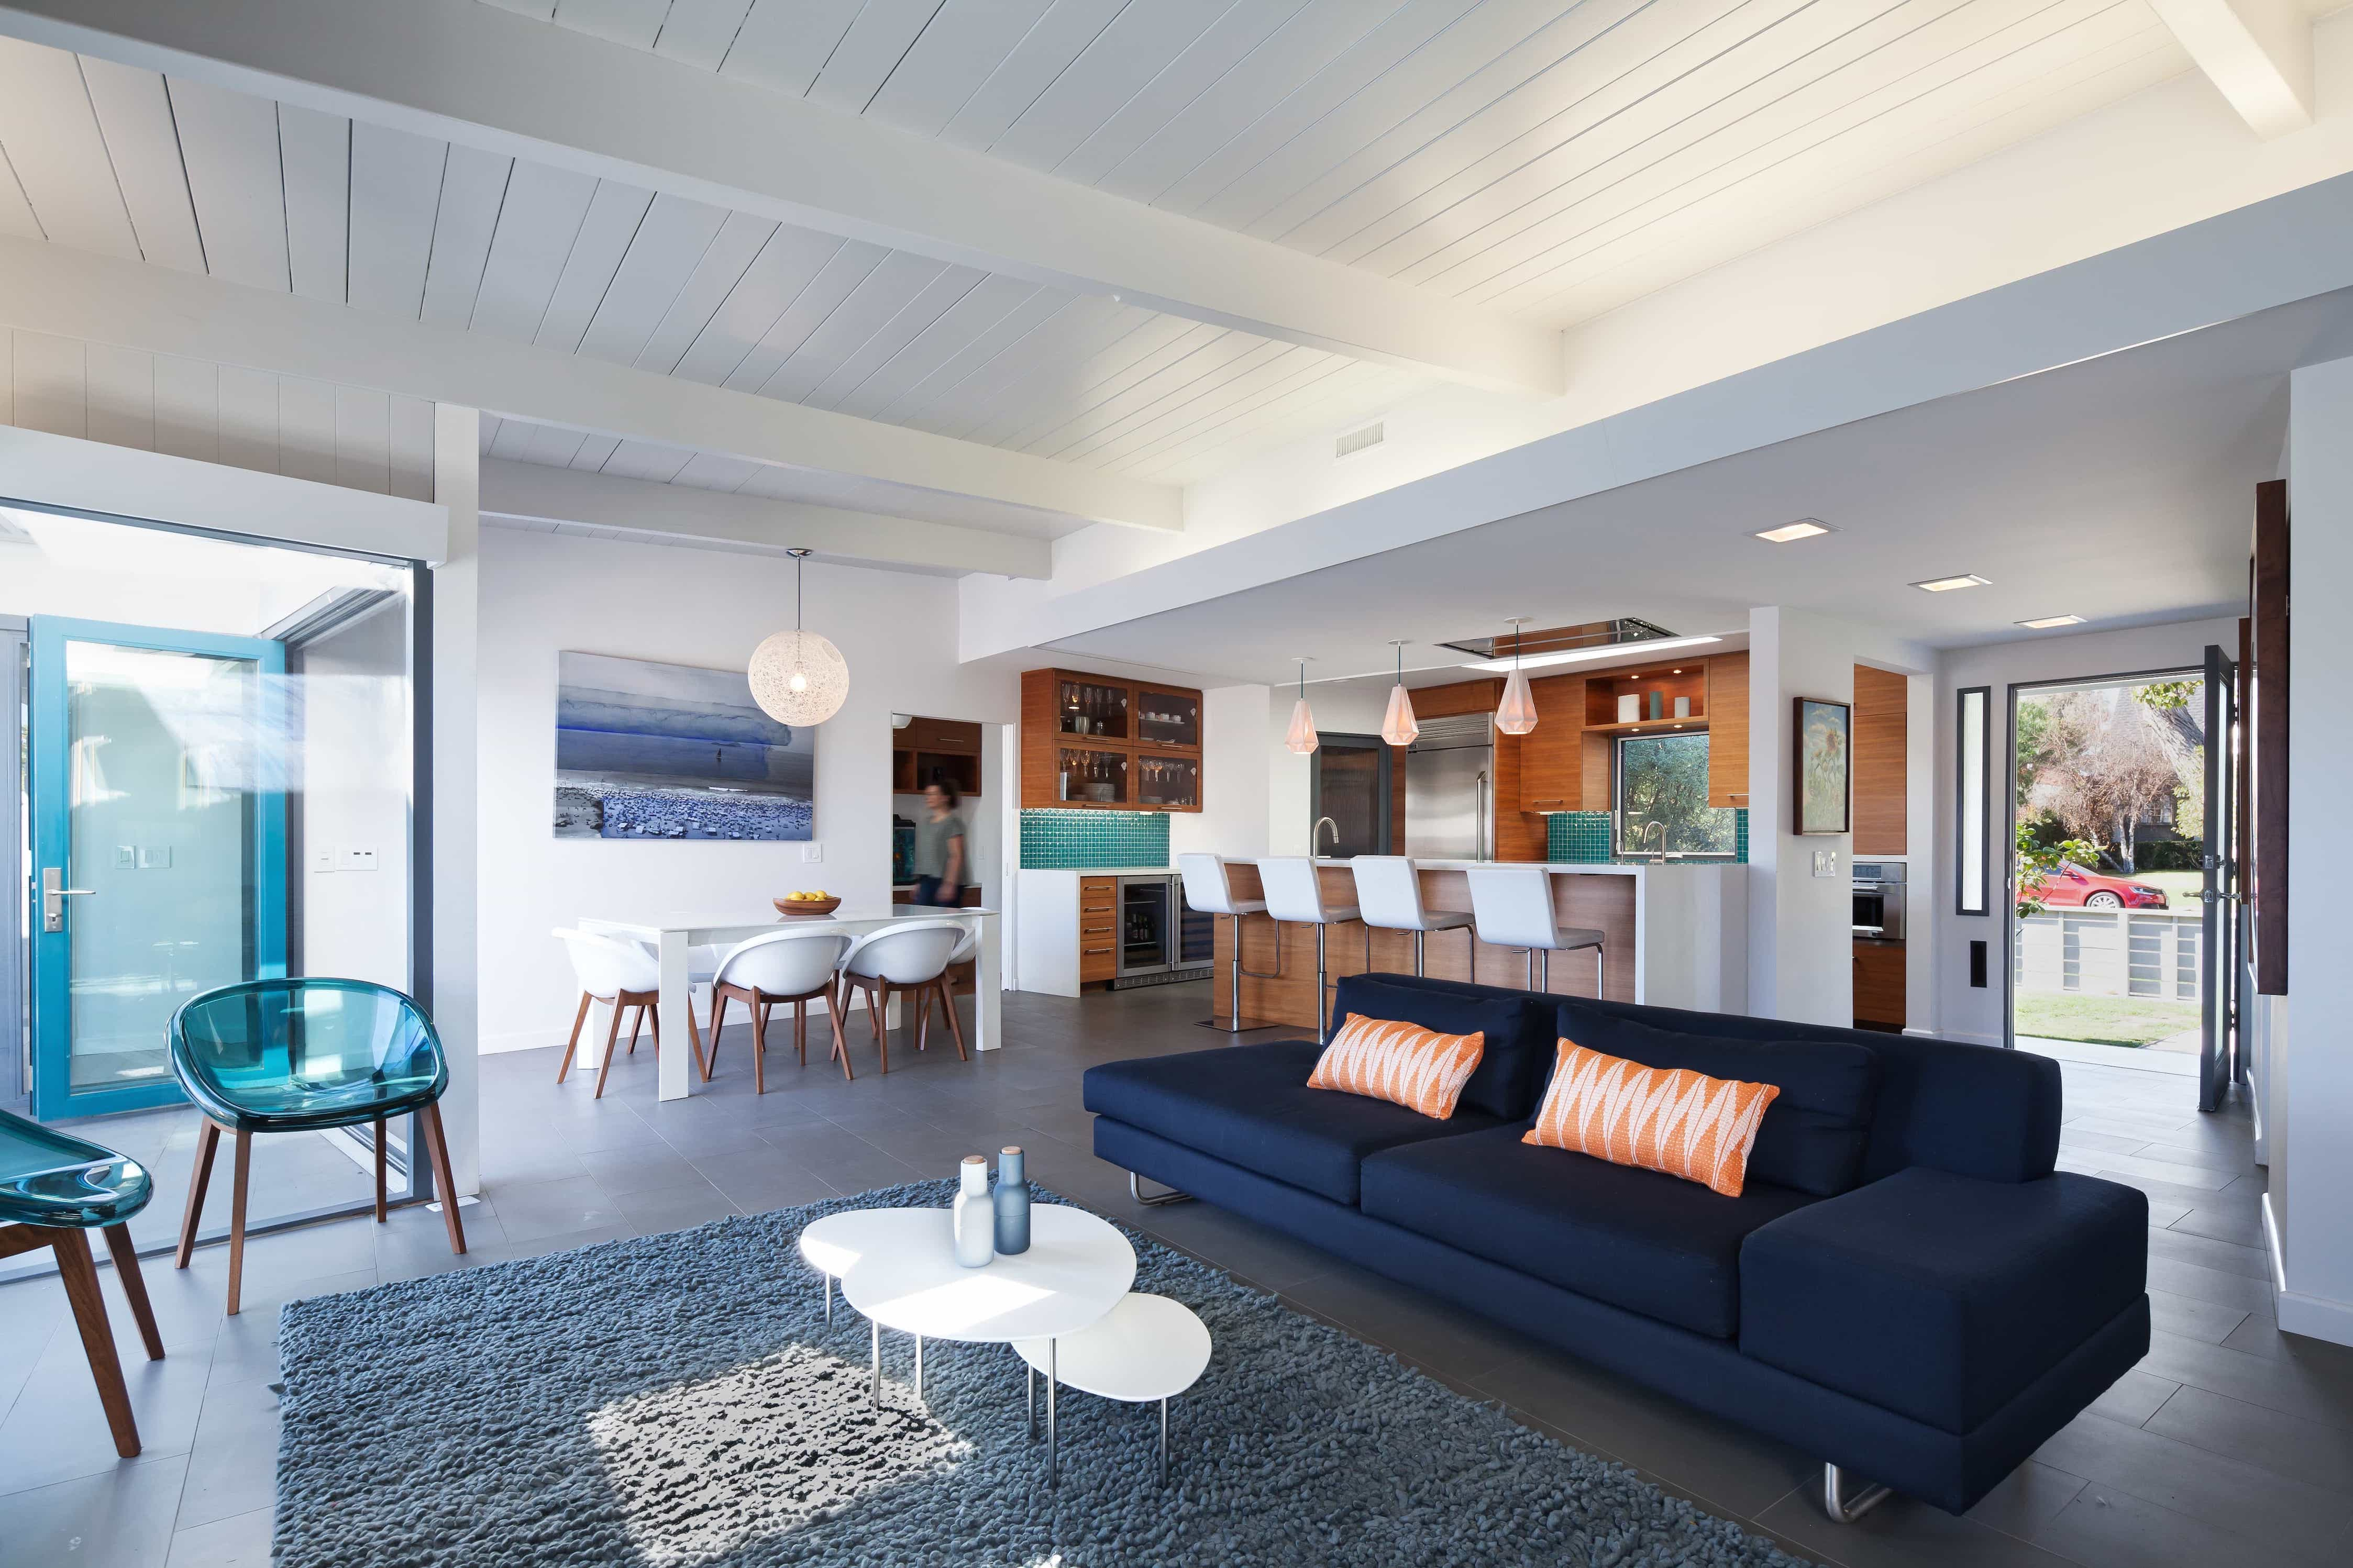 Navy Blue Shag Rug and Sofa in Open Floor Plan Modern Living Room With Exposed Ceiling Beams and Blue Accents